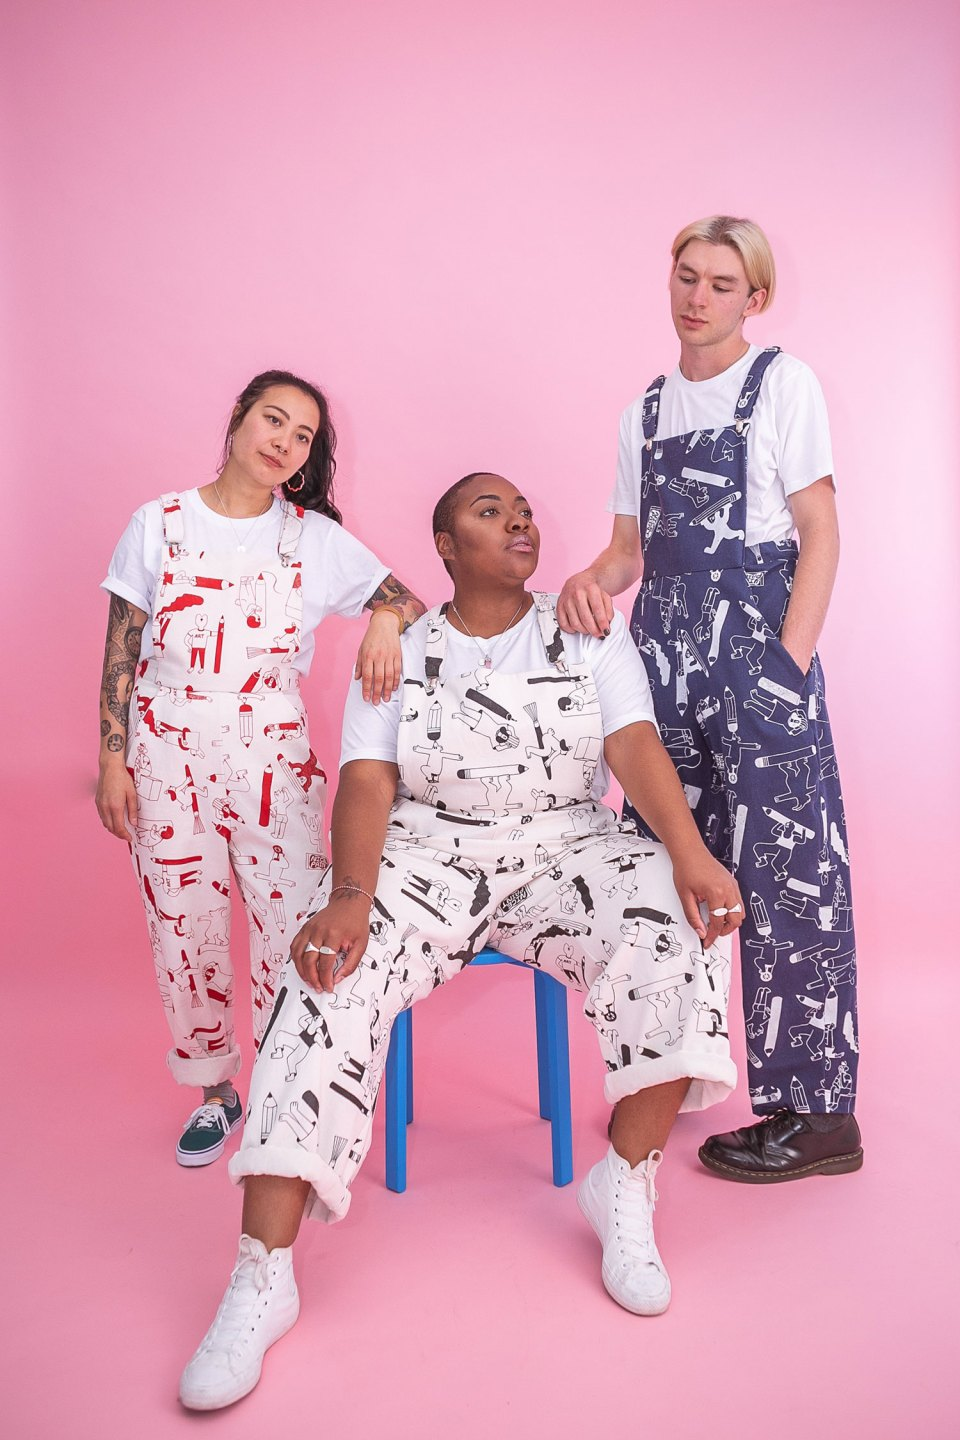 3 models wearing all over print dungarees made by YUK FUN X The Emperor's Old Clothes